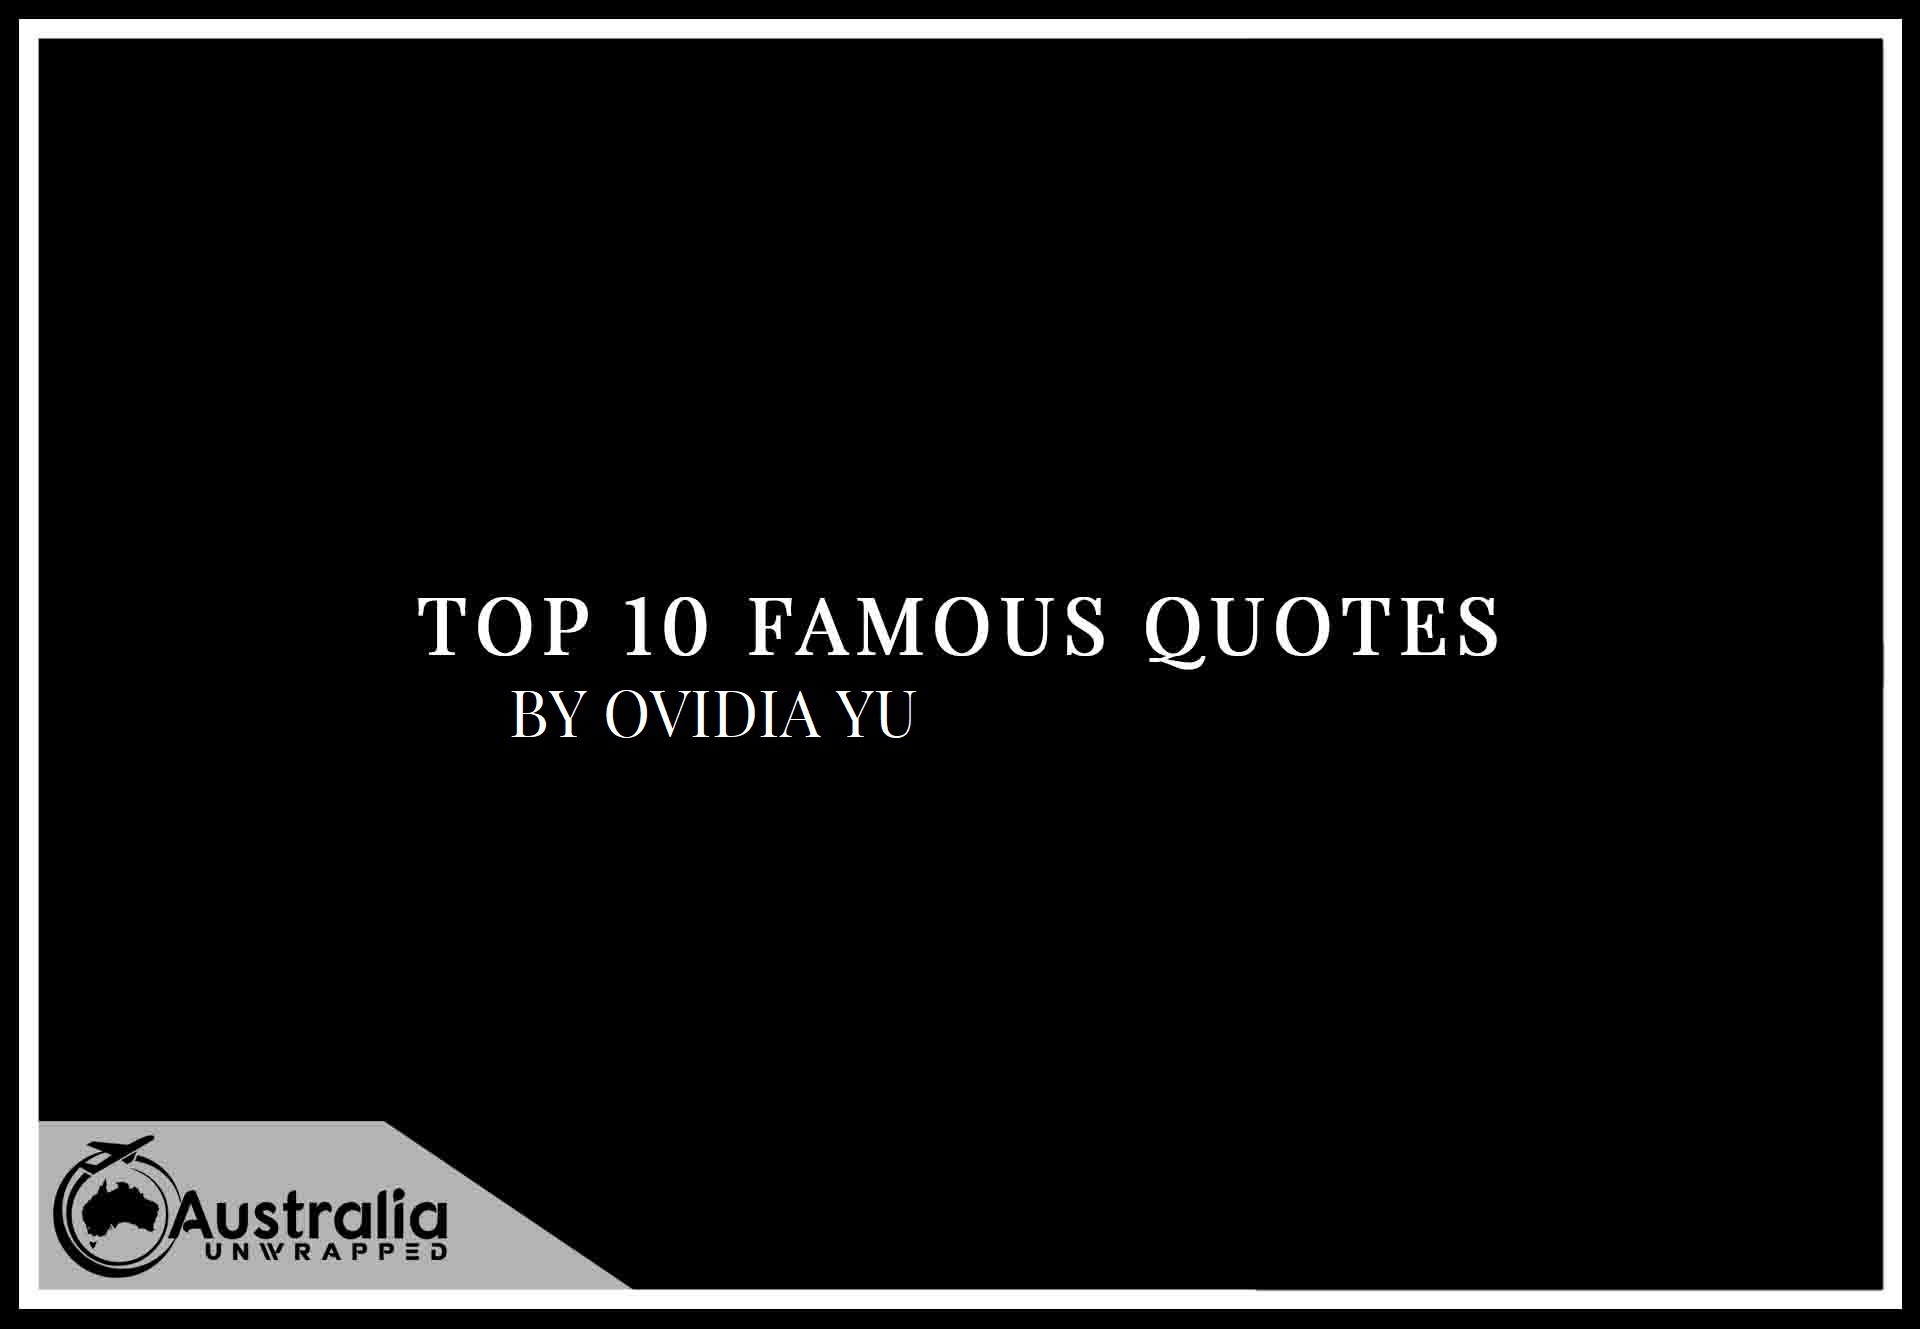 Top 10 Famous Quotes by Author Ovidia Yu